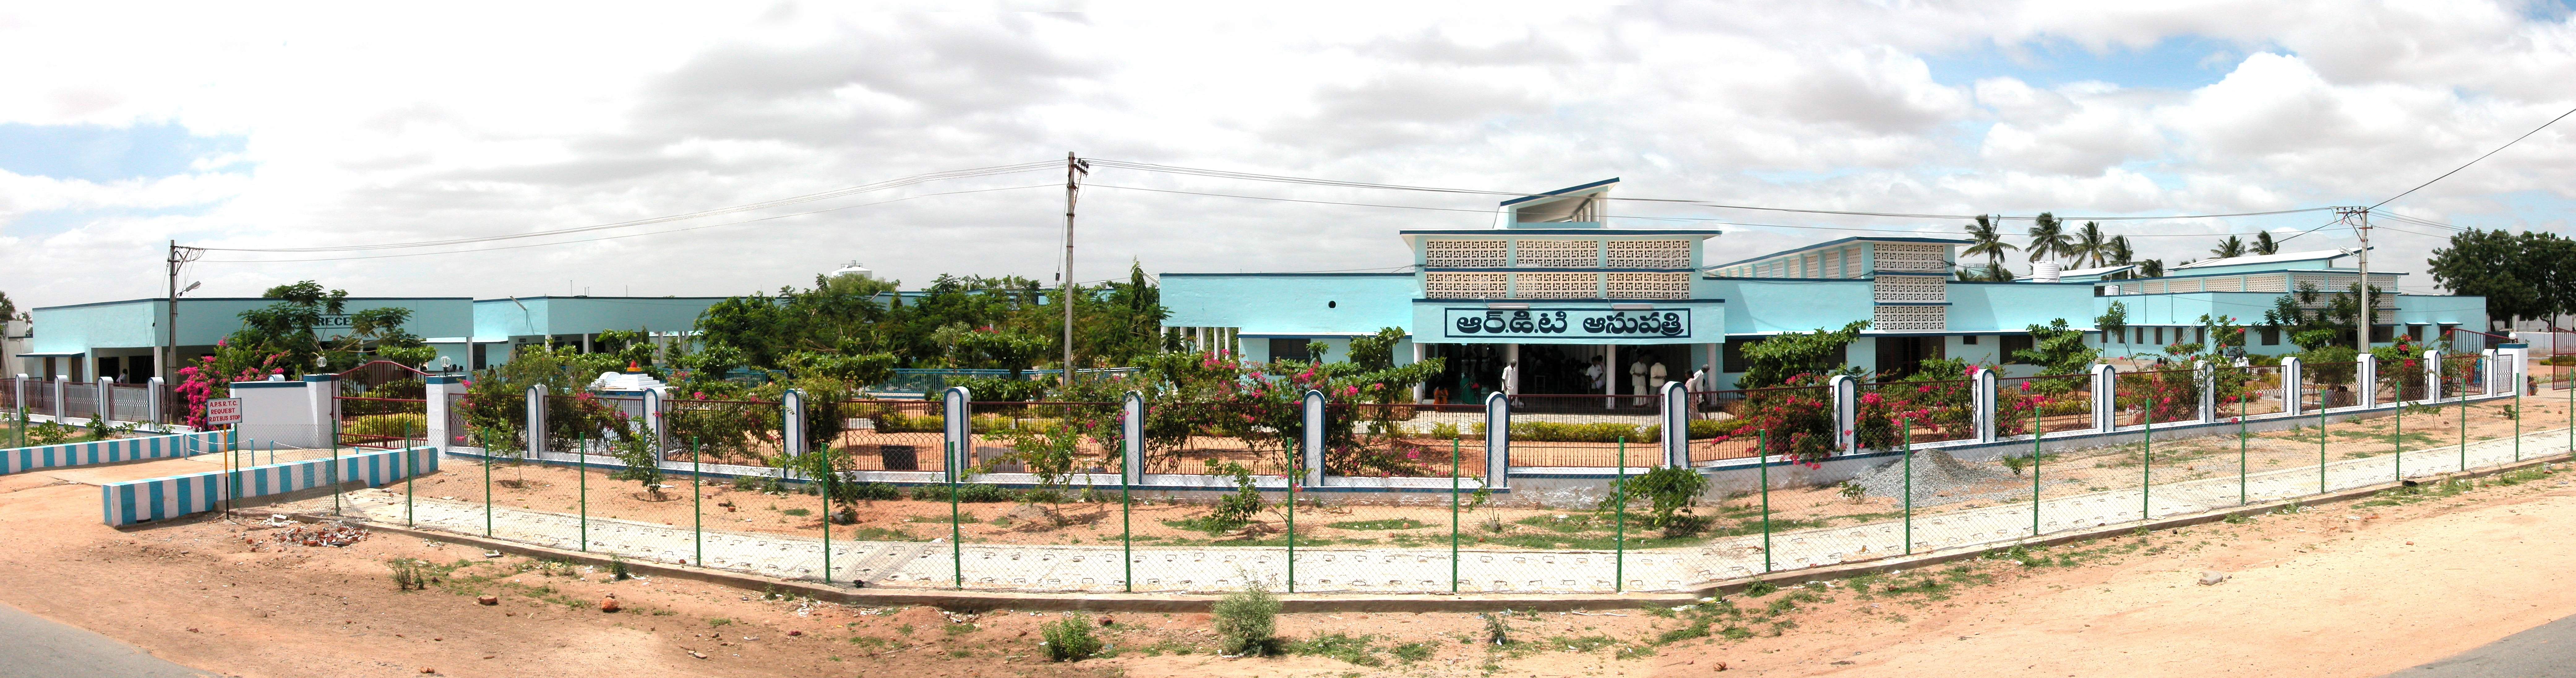 Main hospital at Bathelapalle village